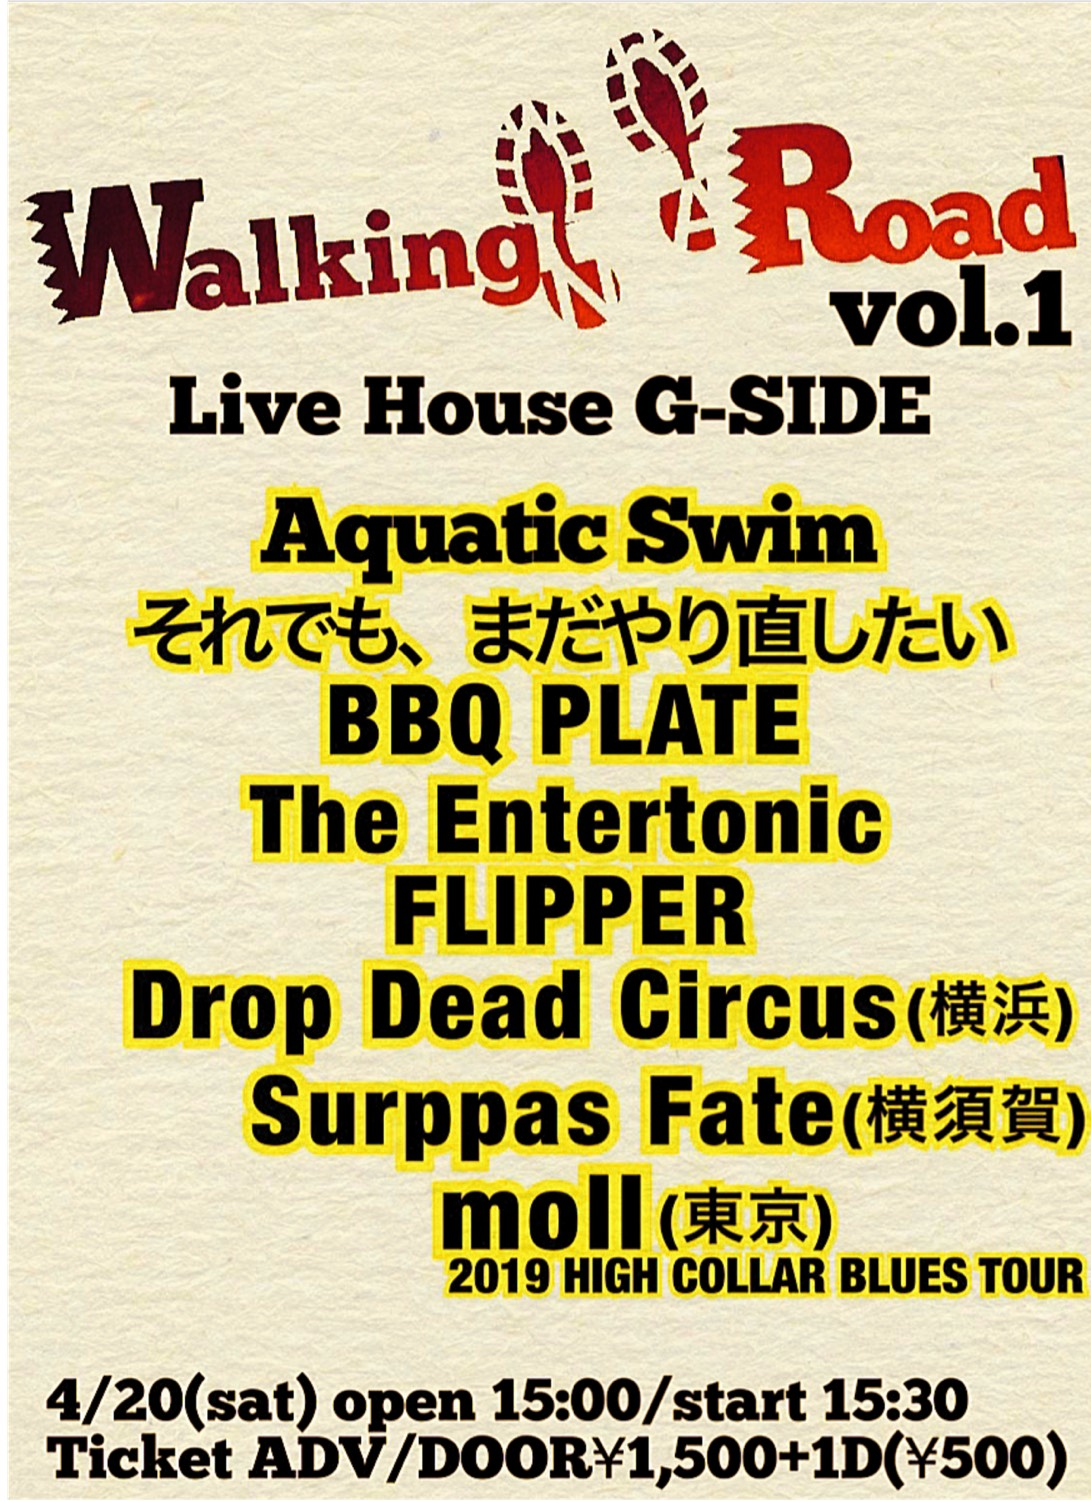 4月20日土曜日 Walking Road vol.1